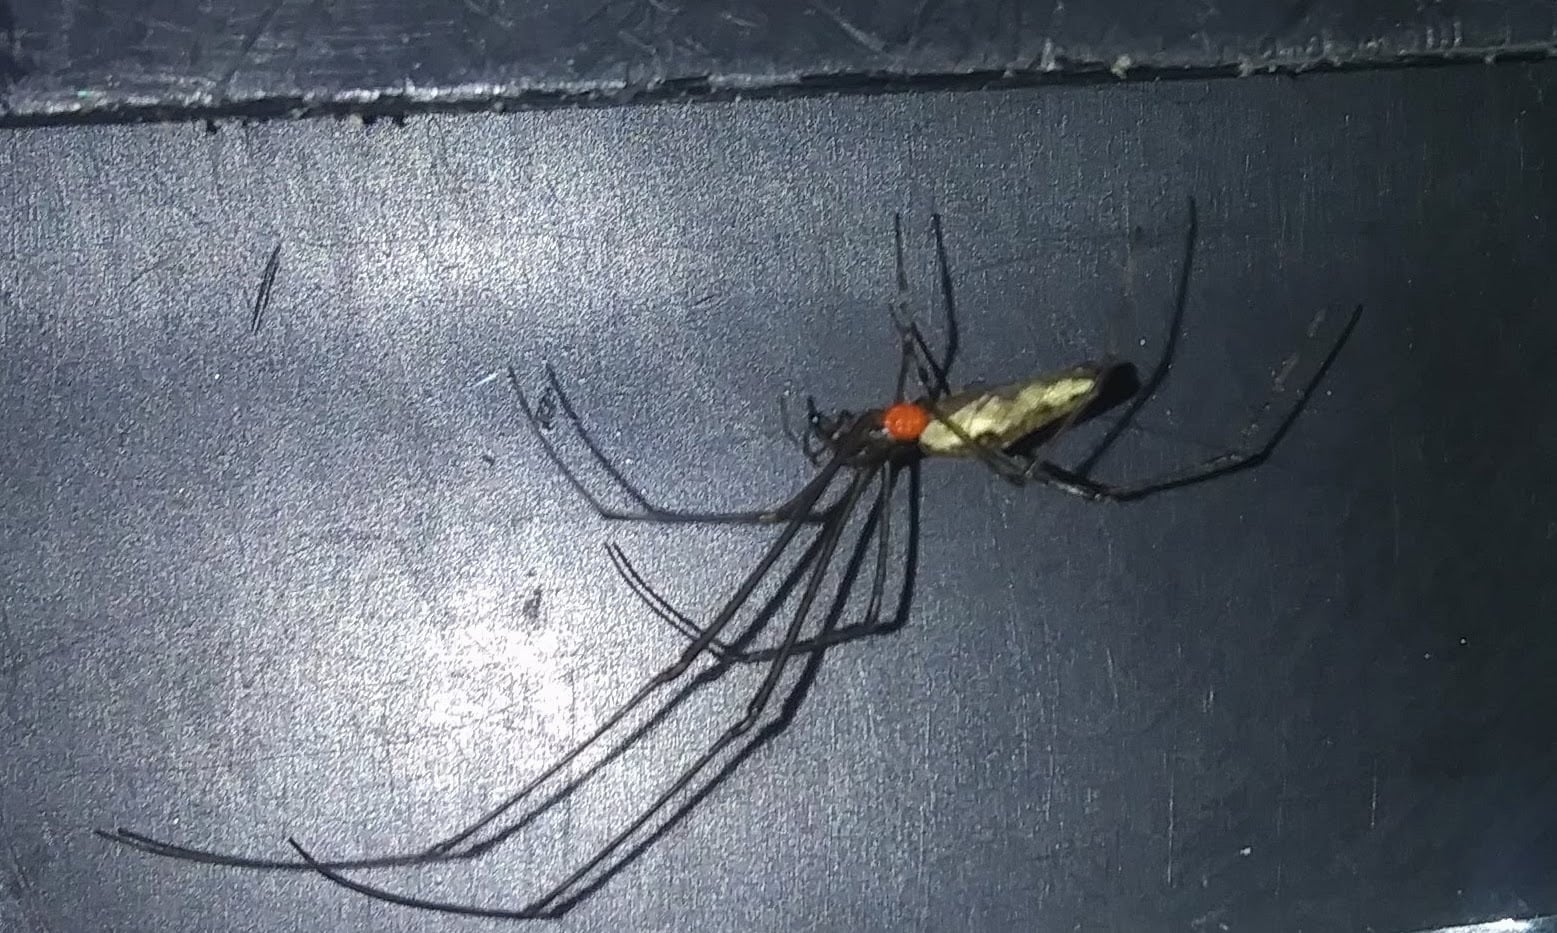 Picture of Tetragnatha - Lateral,Parasite